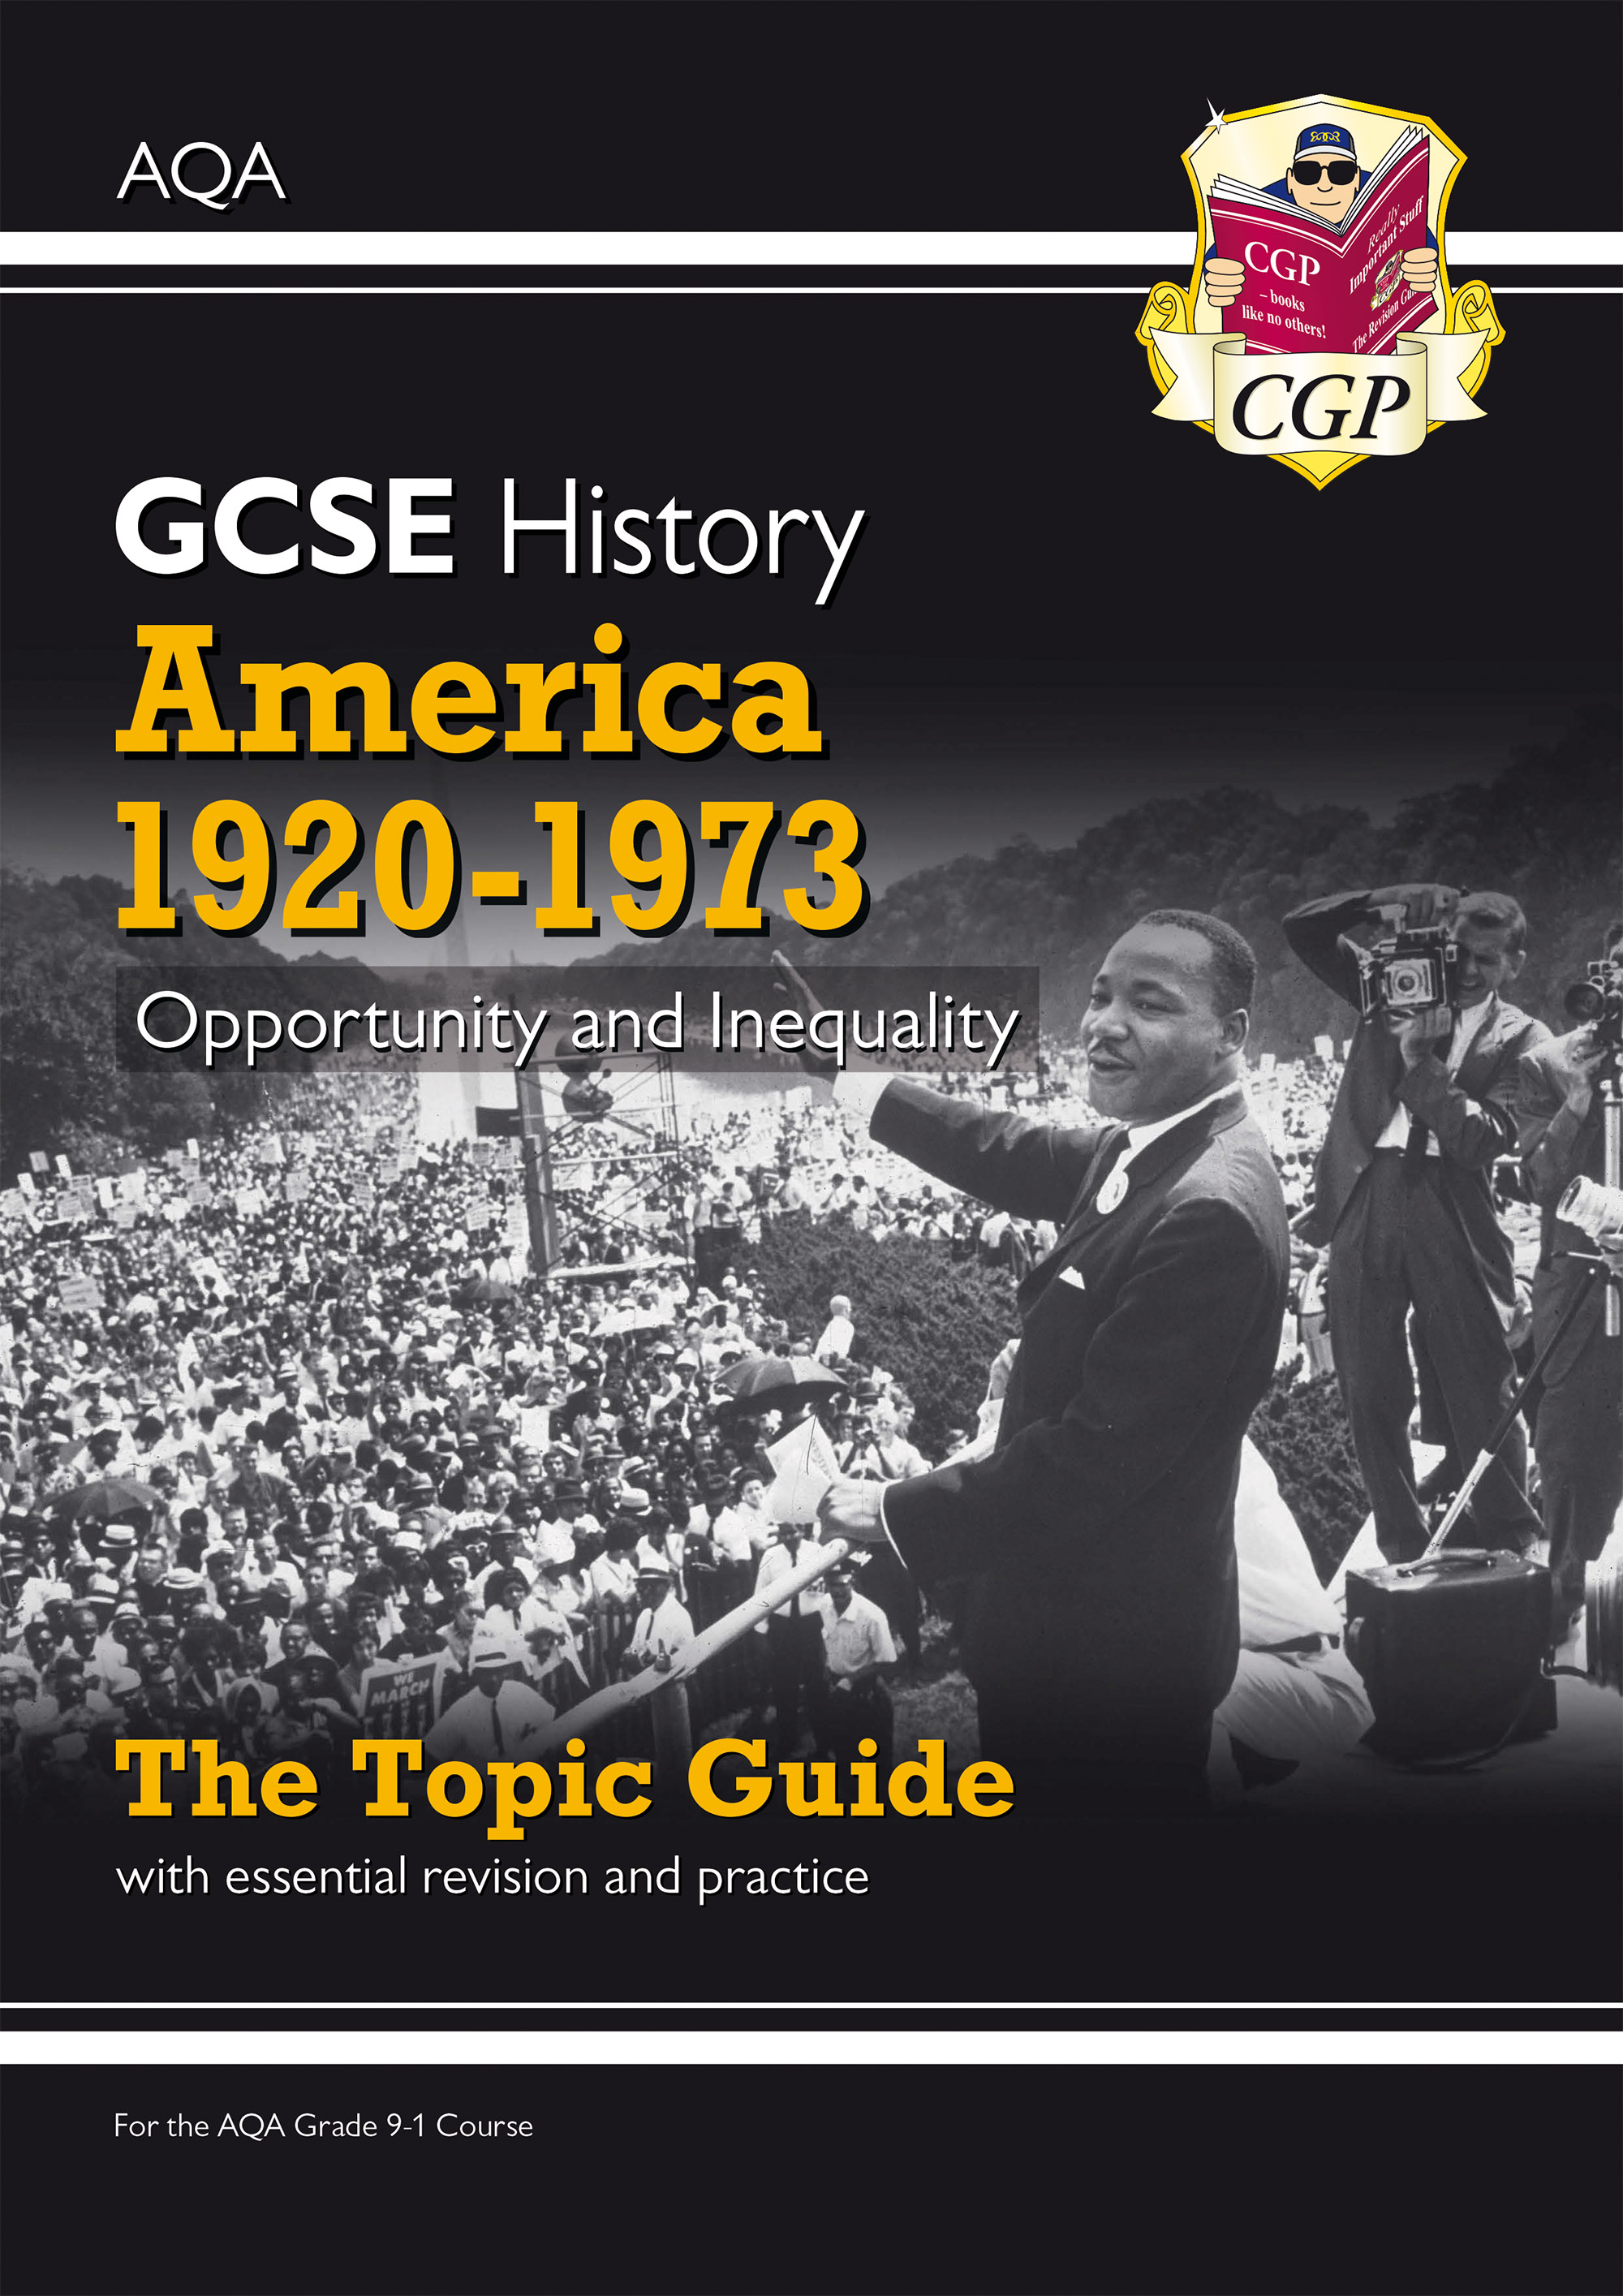 HAAOO41D - Grade 9-1 GCSE History AQA Topic Guide - America, 1920-1973: Opportunity and Inequality O